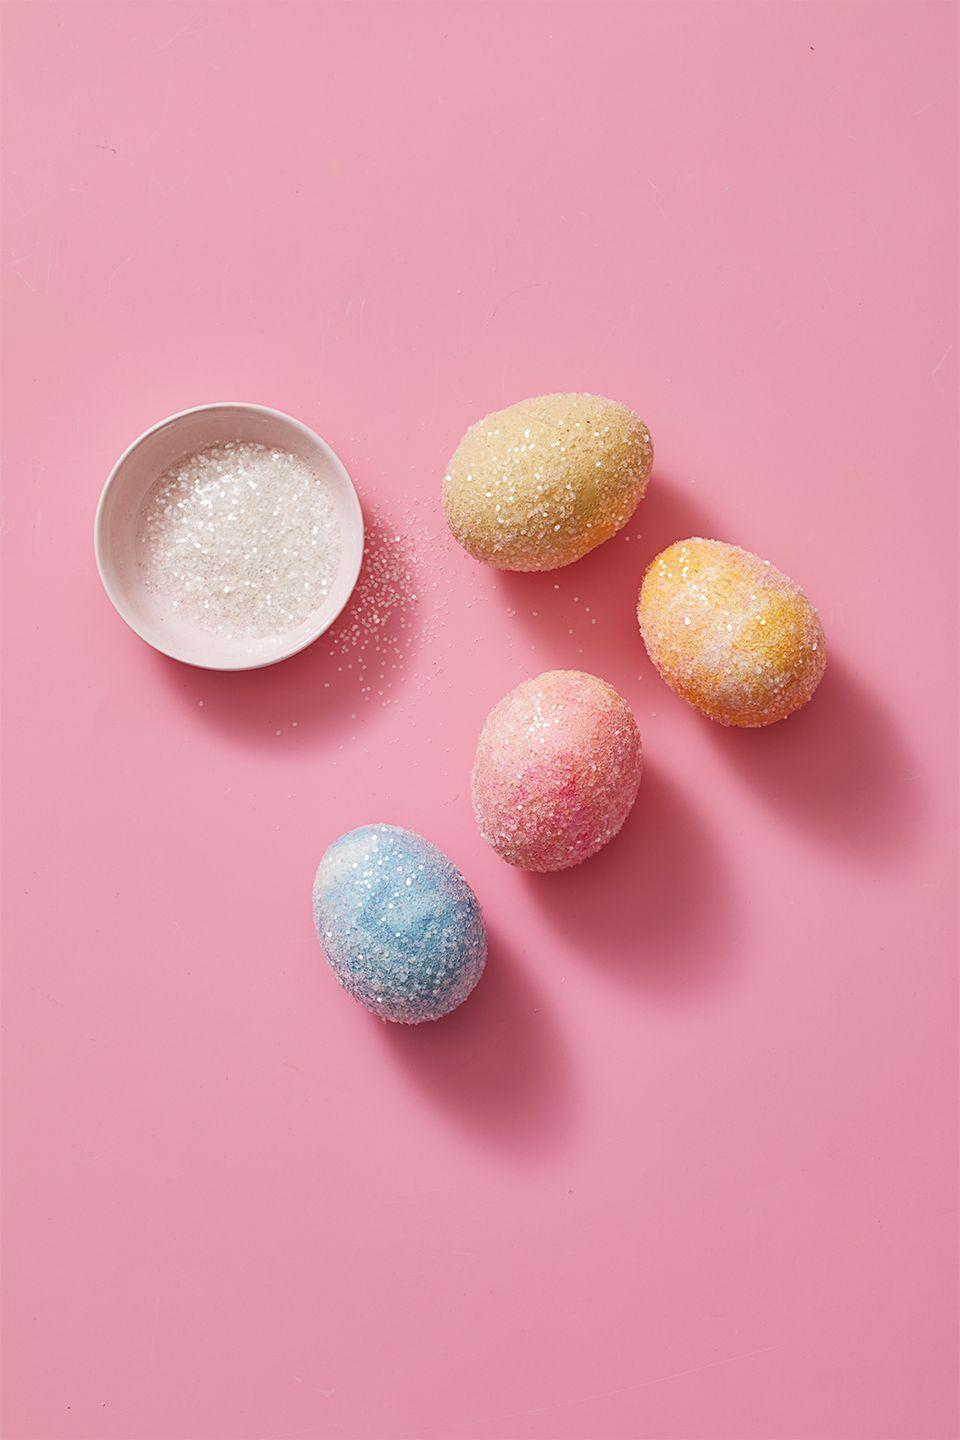 """<p>Paint one half of an egg with craft glue. Sprinkle with clear iridescent glitter and let dry. Repeat on the other side. These look beautiful on natural eggs, dyed eggs, and even other egg crafts like <a href=""""https://www.goodhousekeeping.com/holidays/easter-ideas/videos/a43272/how-to-make-marbled-easter-eggs/"""" rel=""""nofollow noopener"""" target=""""_blank"""" data-ylk=""""slk:marbled eggs"""" class=""""link rapid-noclick-resp"""">marbled eggs</a>. Note that these eggs are not edible. </p>"""